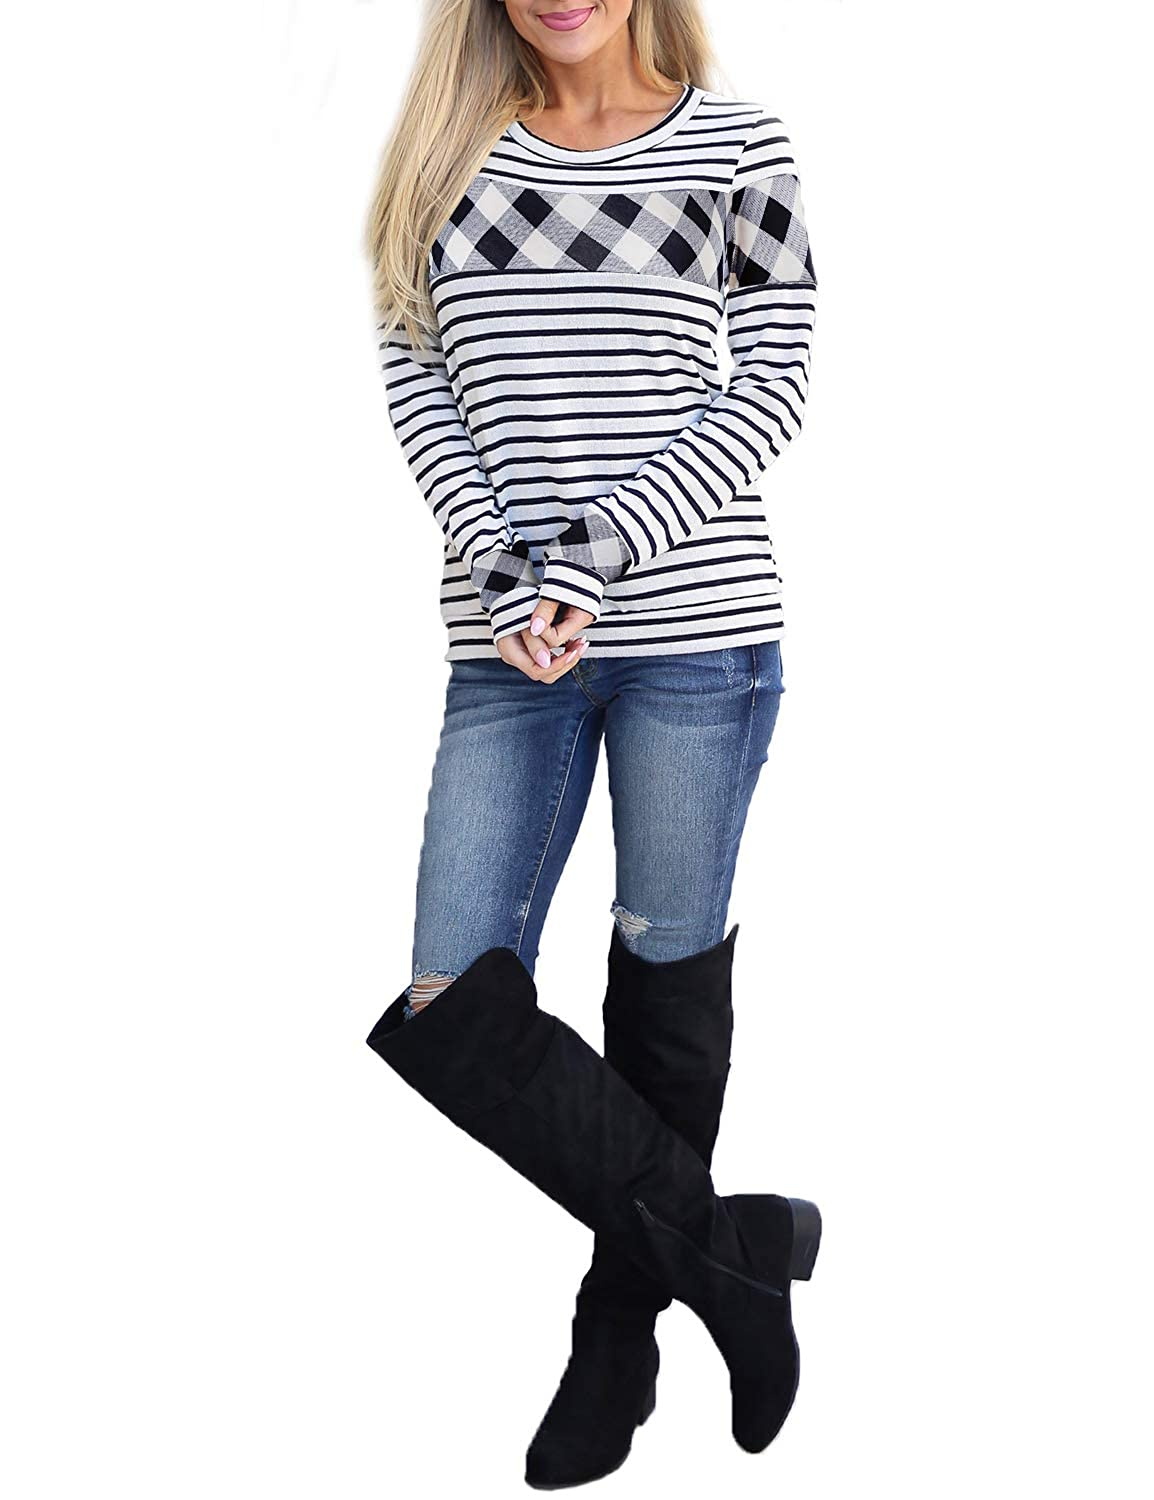 Blooming Jelly Women's Casual Long Sleeve Shirt Plaid Striped Round Neck Top Tee